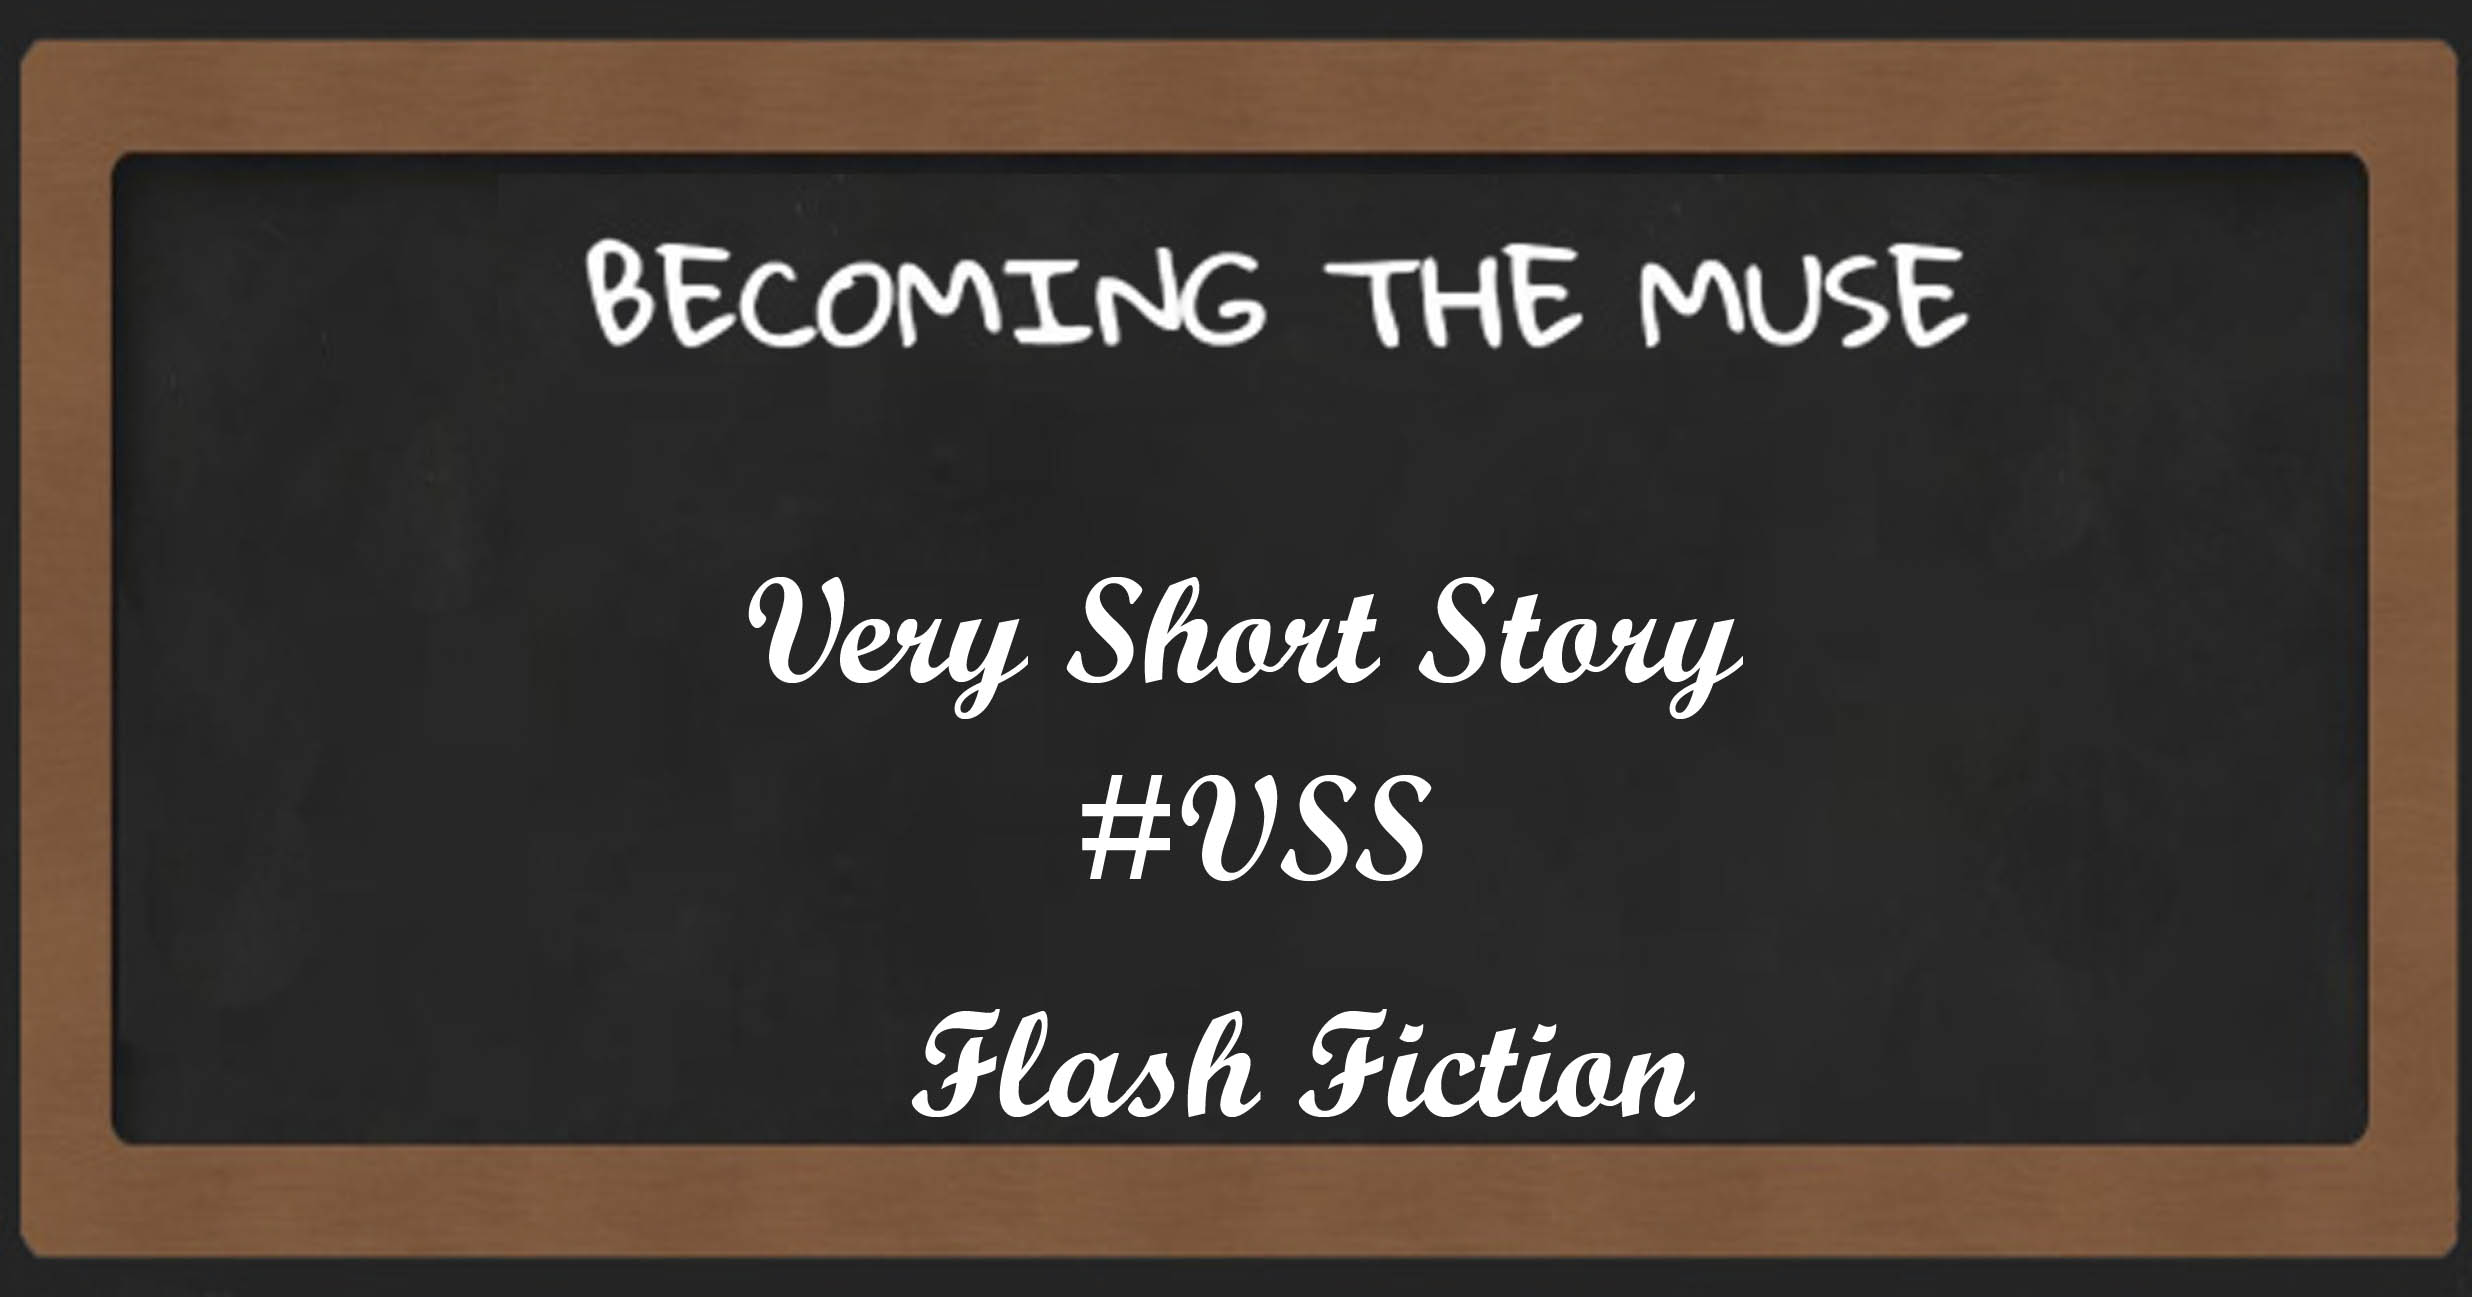 #VSS very short story